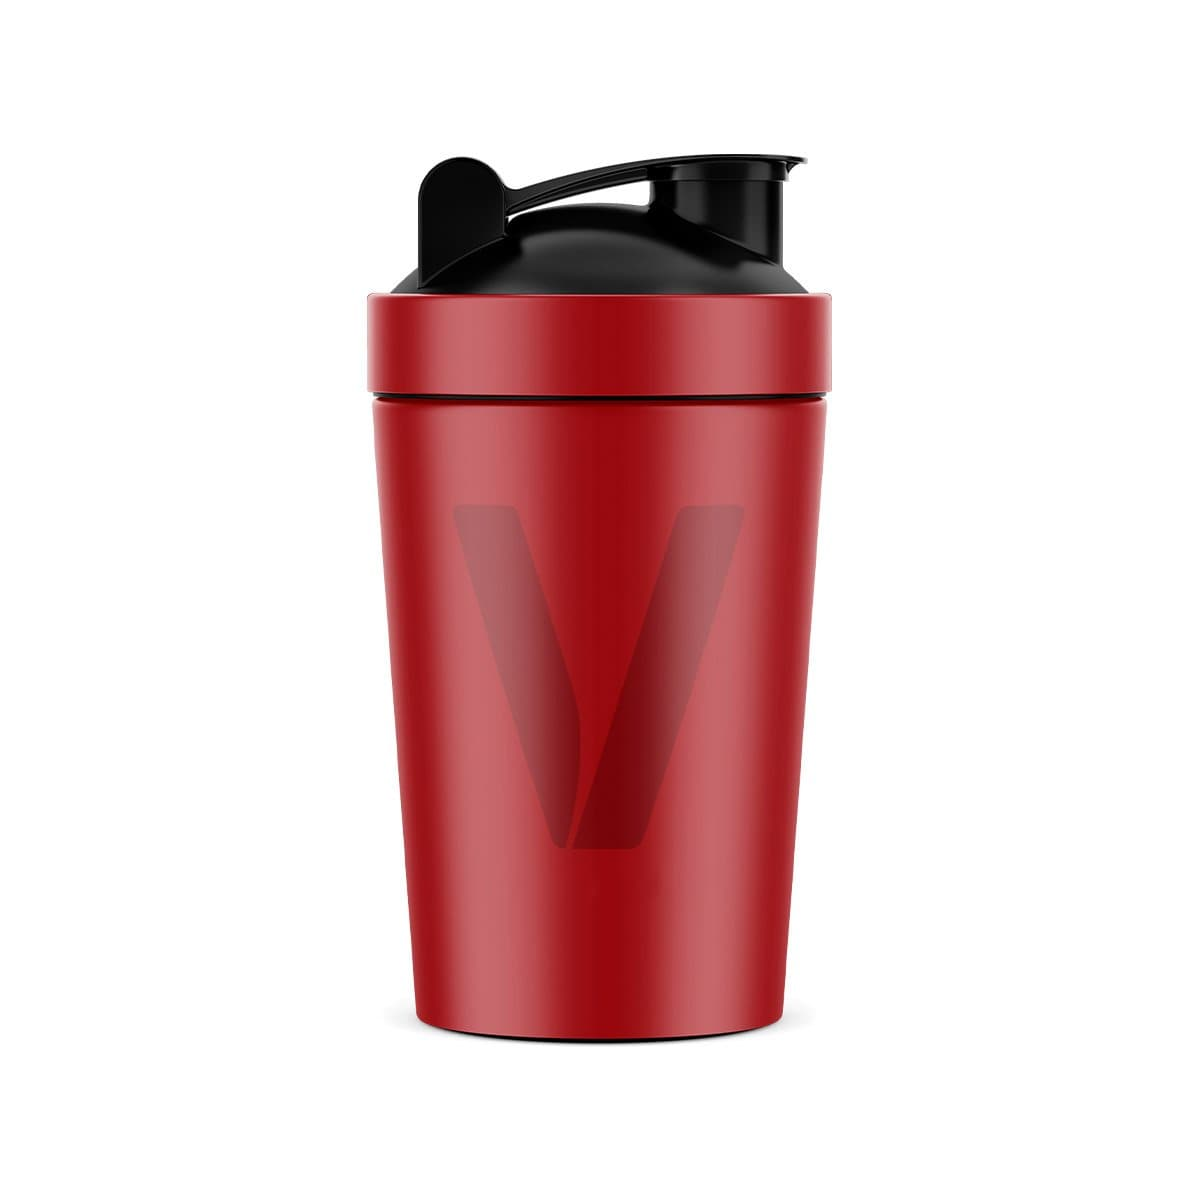 Limited Edition Red 'V' Stainless Steel 600ml Shaker